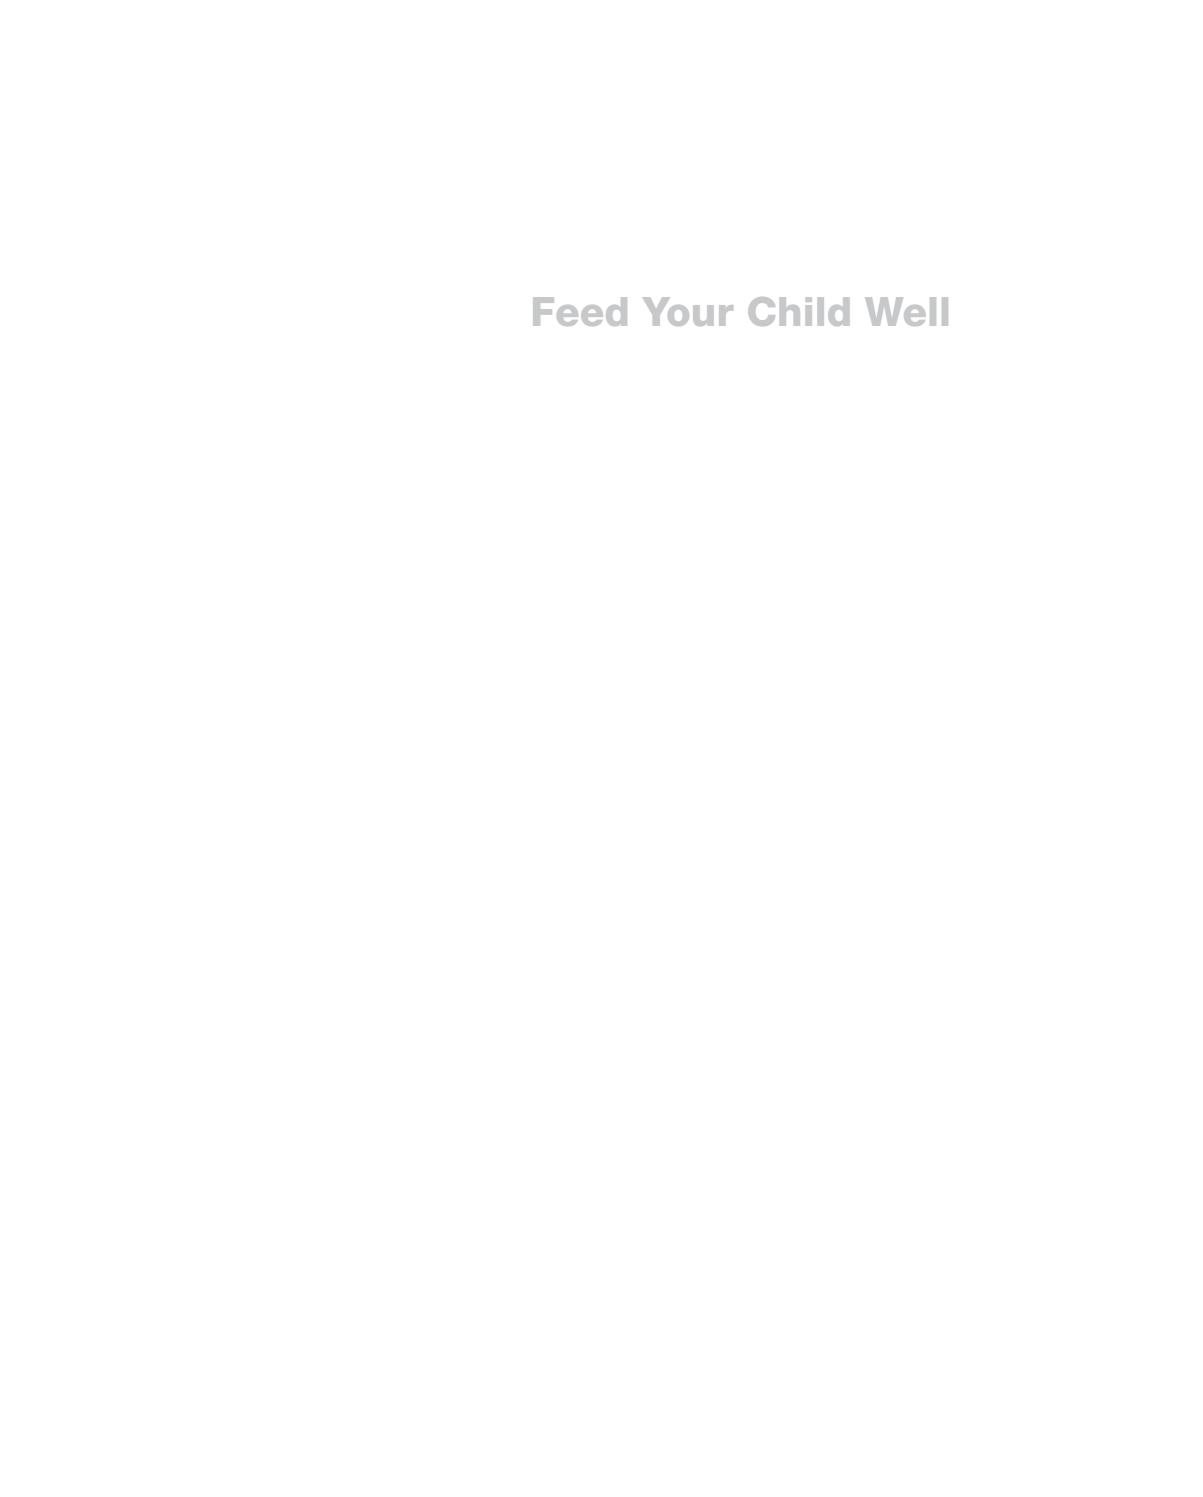 Feedyourchildwell by The O'Brien Press Ltd - issuu